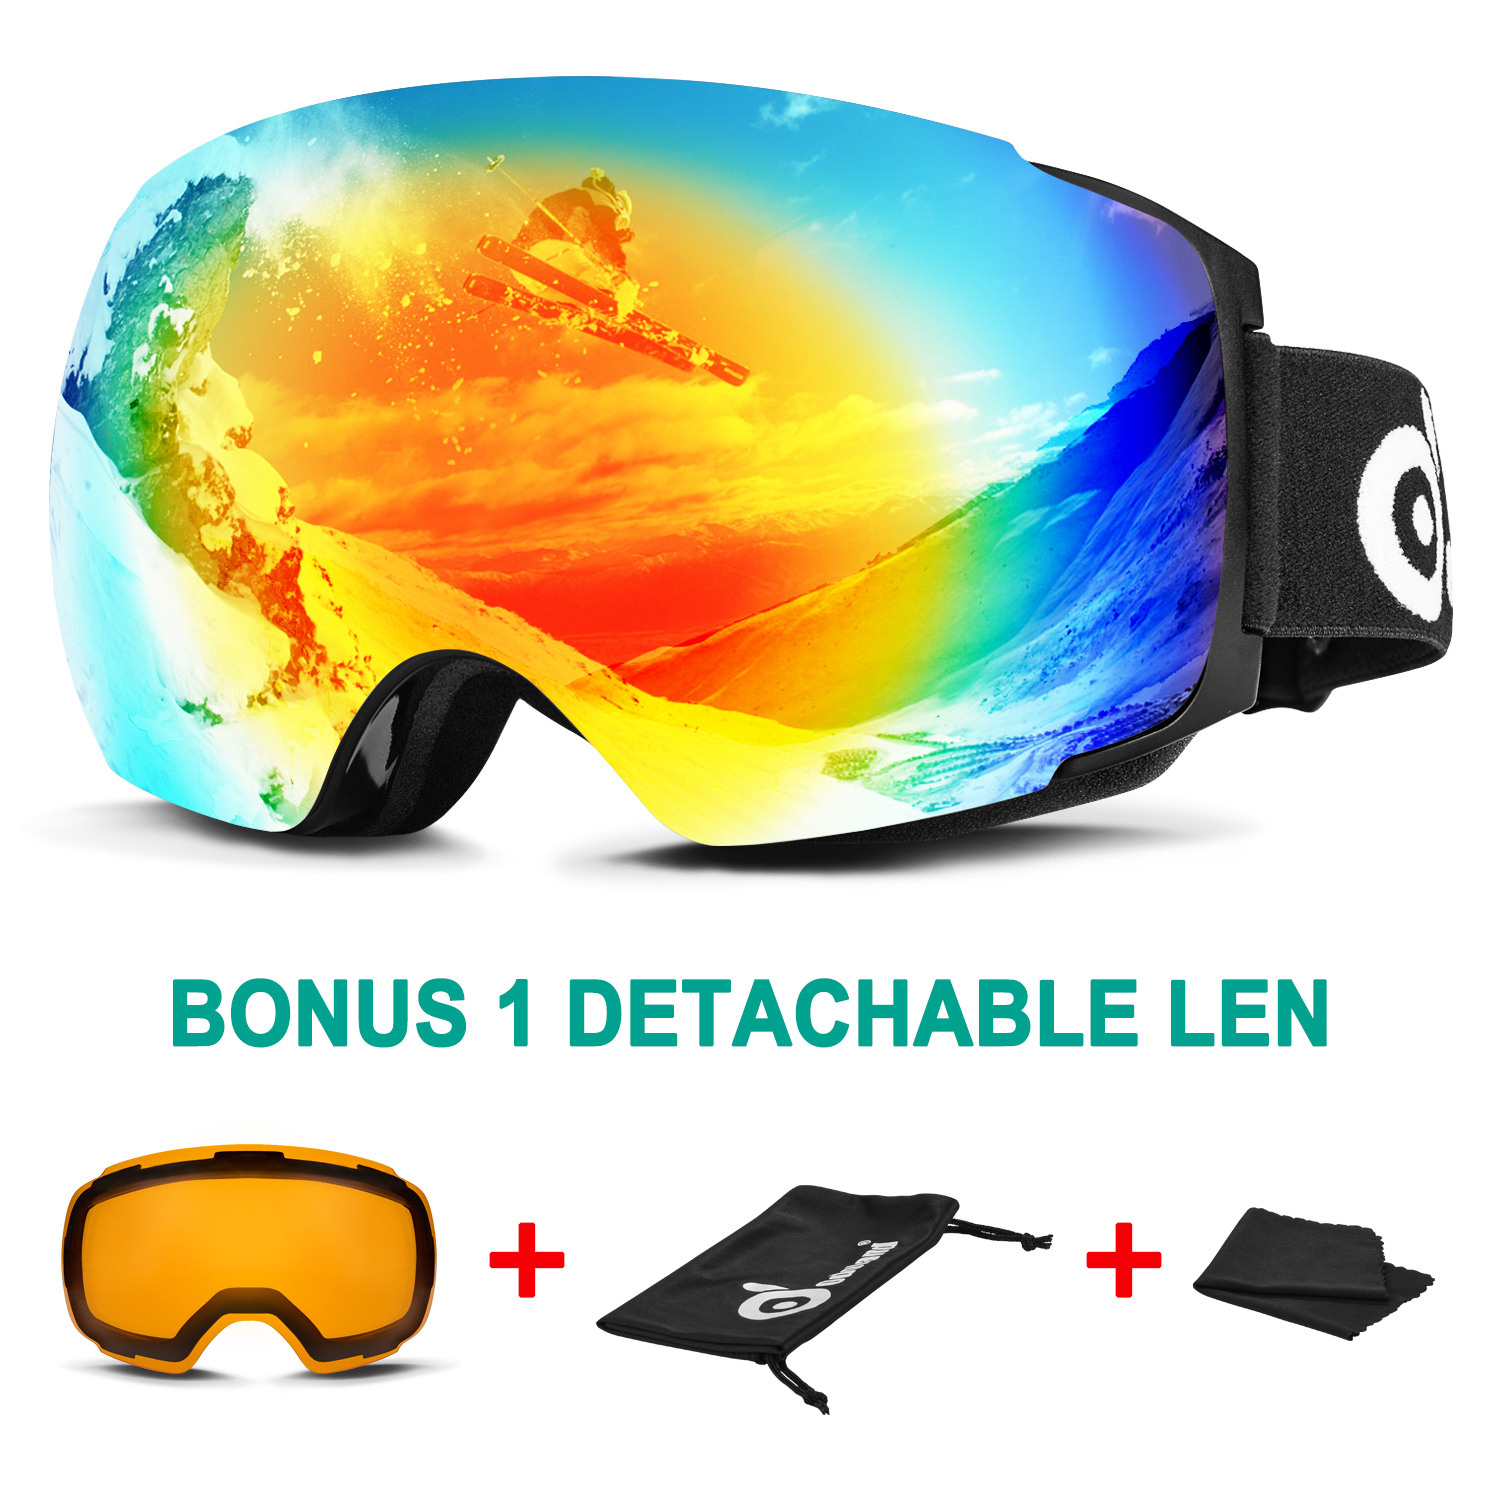 Odoland Ski Goggles for Men Women Magnetic Interchangeable Large Spherical Frameless OTG UV400 Protection by